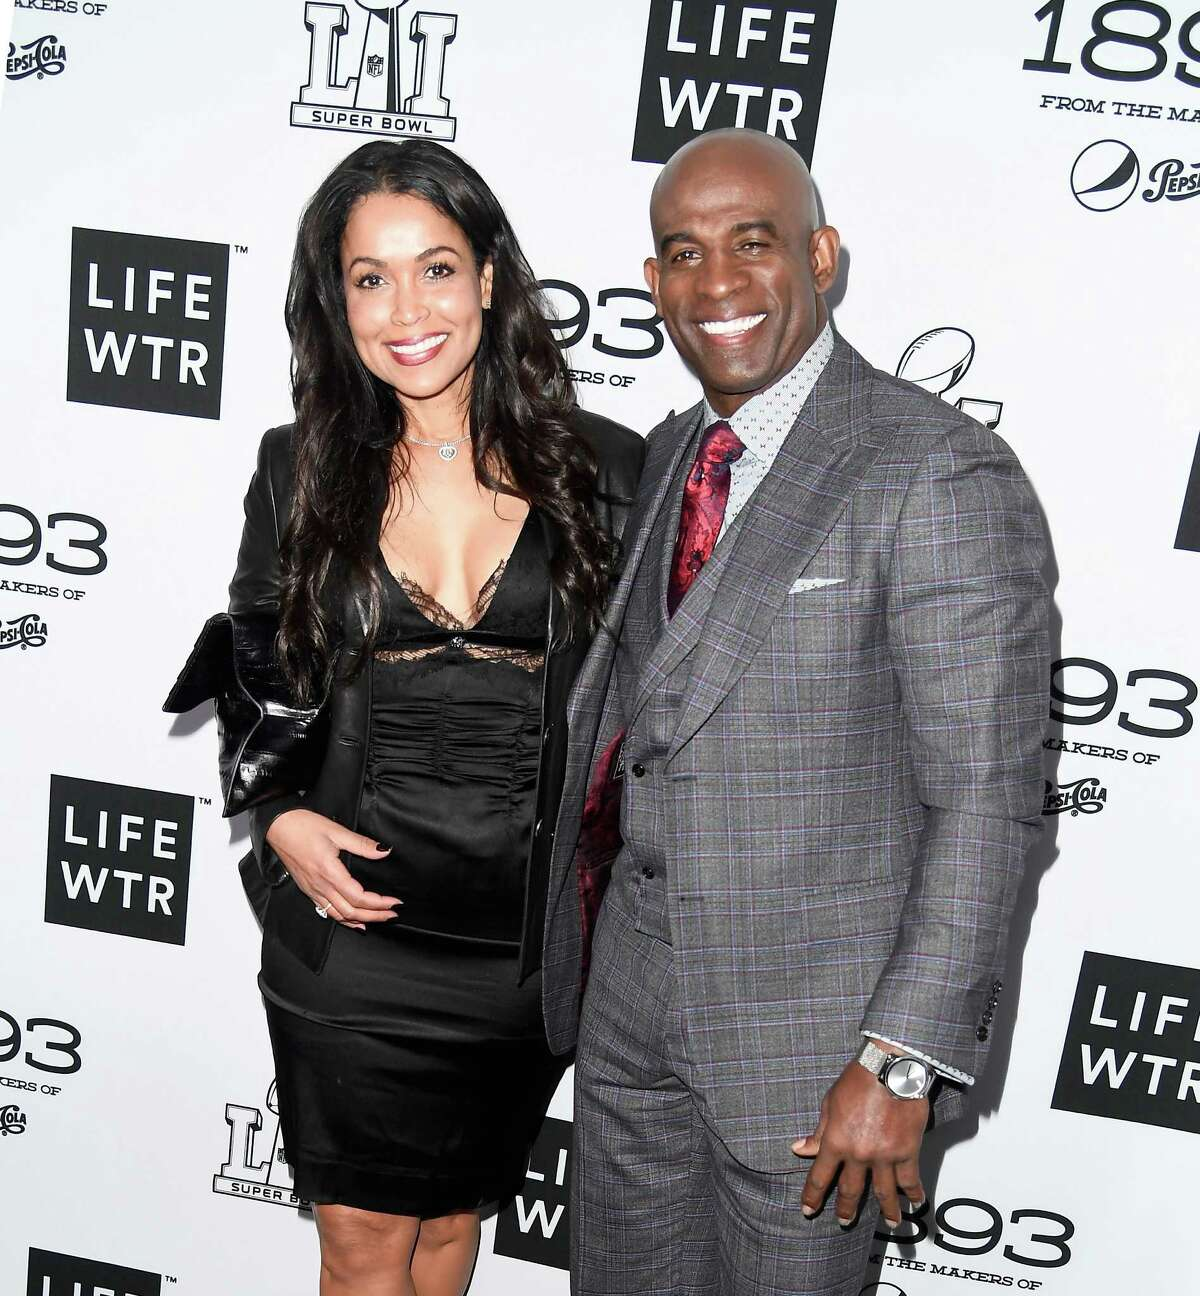 HOUSTON, TX - FEBRUARY 03: Former NFL player Deion Sanders (R) and businesswoman Tracey Edmonds attend LIFEWTR: Art After Dark, including 1893, at Club Nomadic during Super Bowl LI Weekend on February 3, 2017 in Houston, Texas.